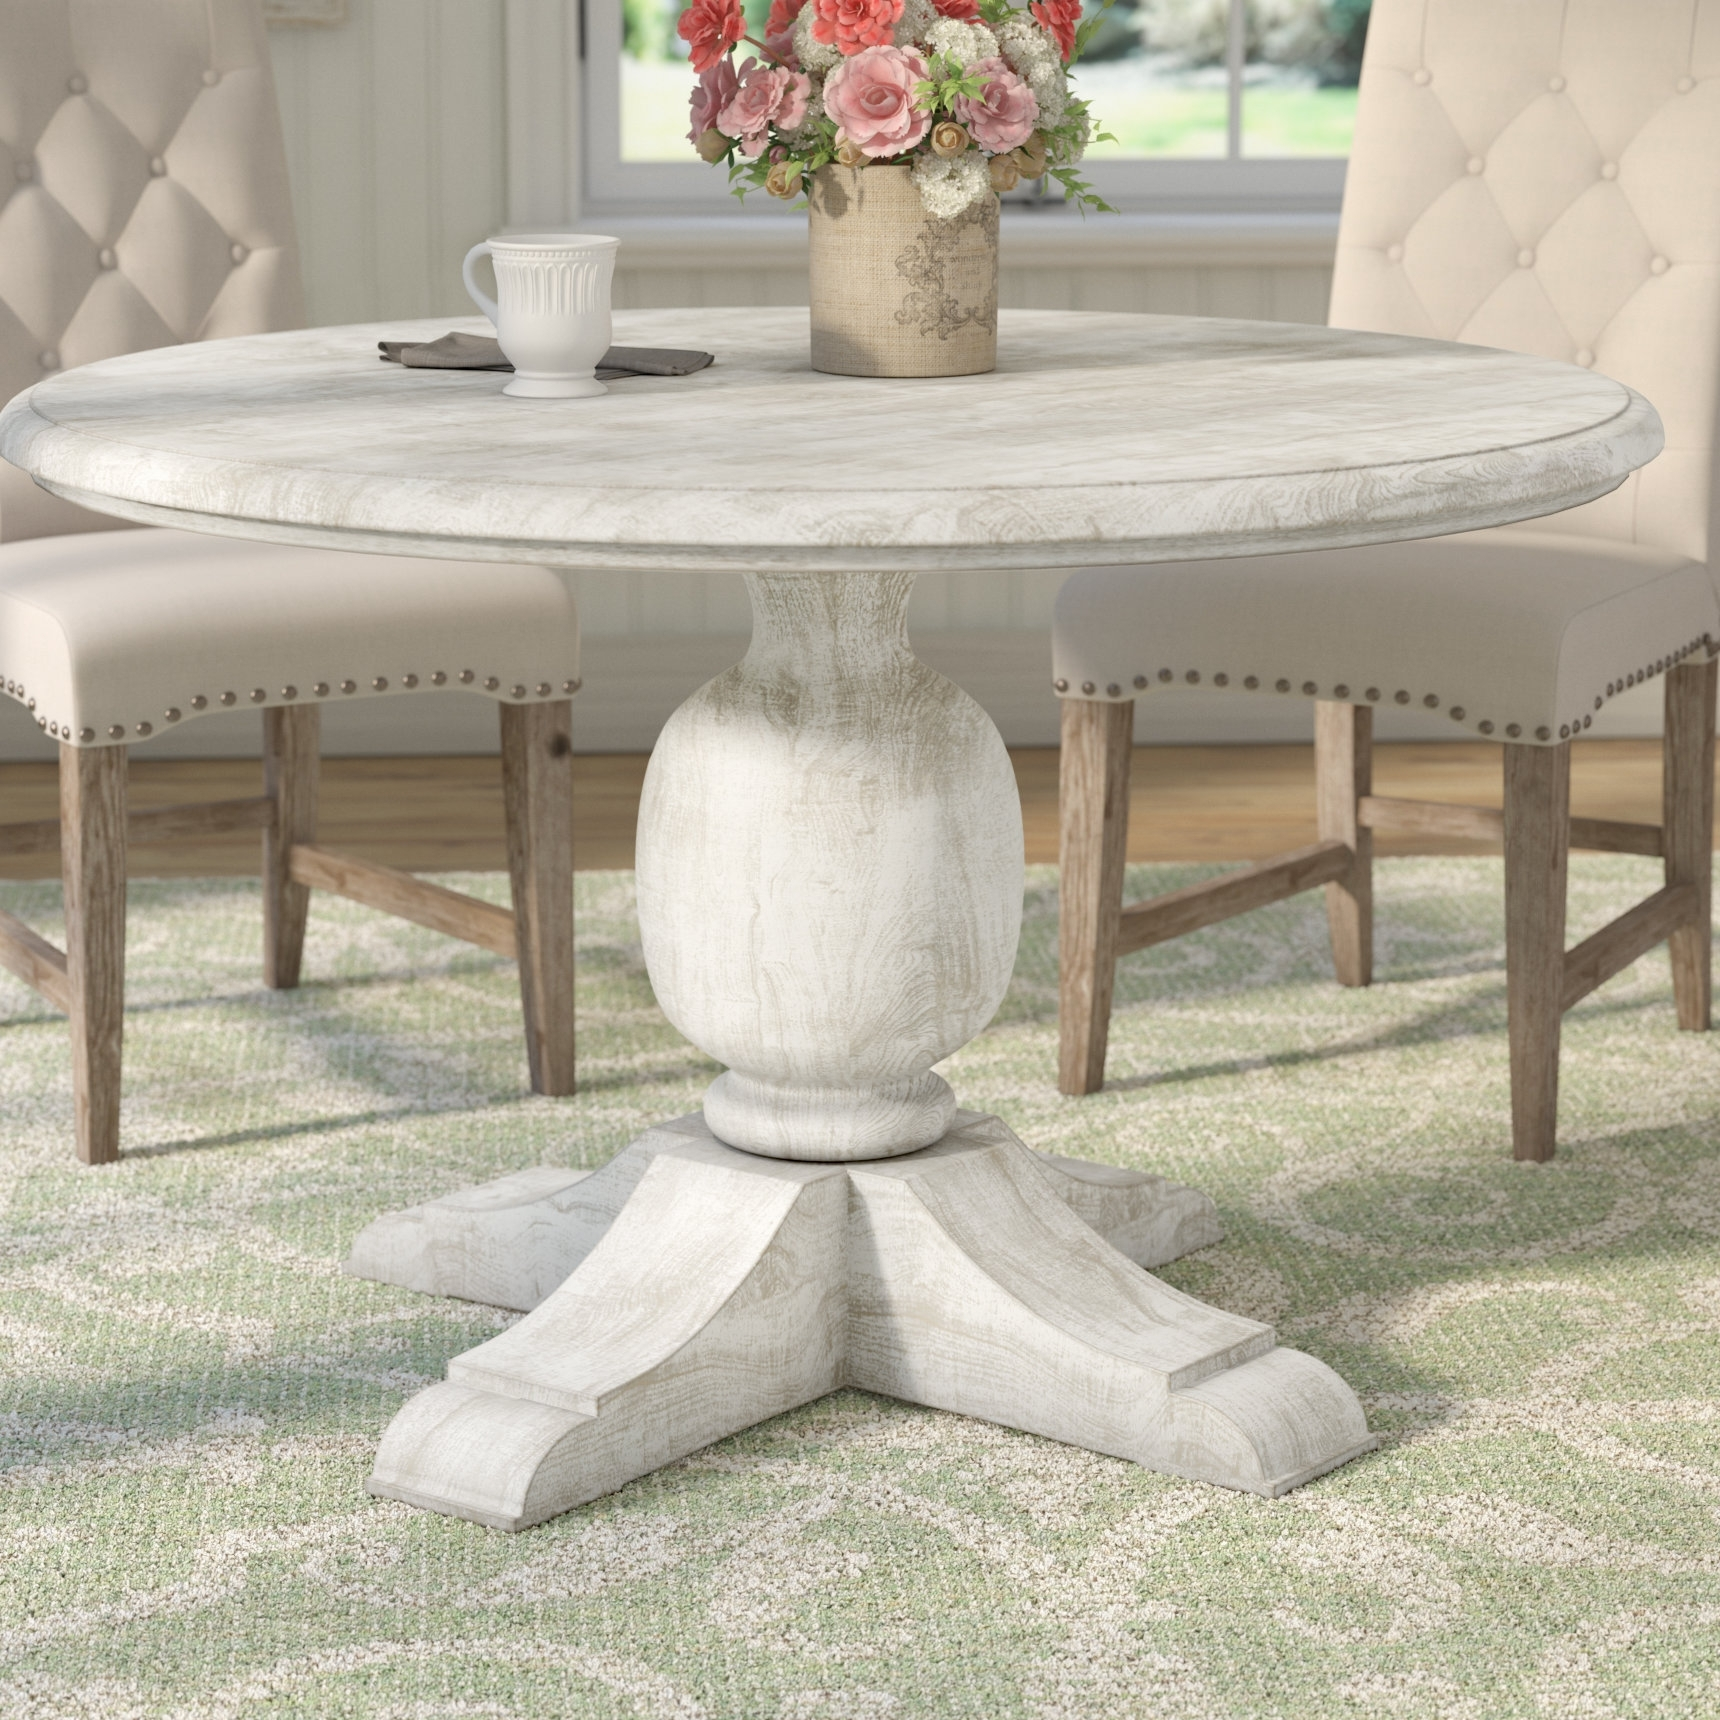 Wayfair Within Current Valencia 60 Inch Round Dining Tables (View 23 of 25)